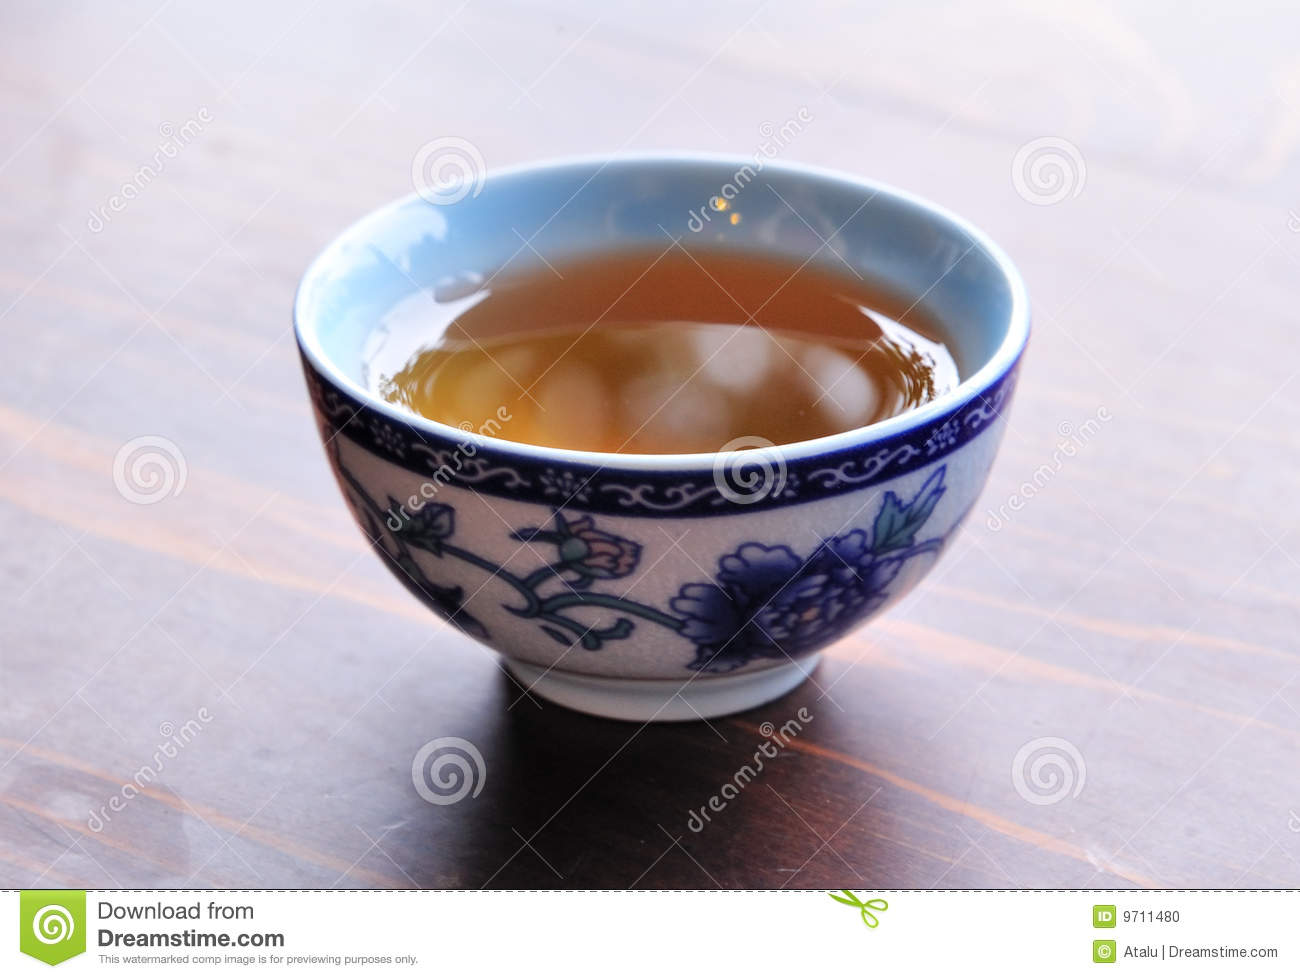 Chinese Tea Cup Stock Photo - Image: 9711480